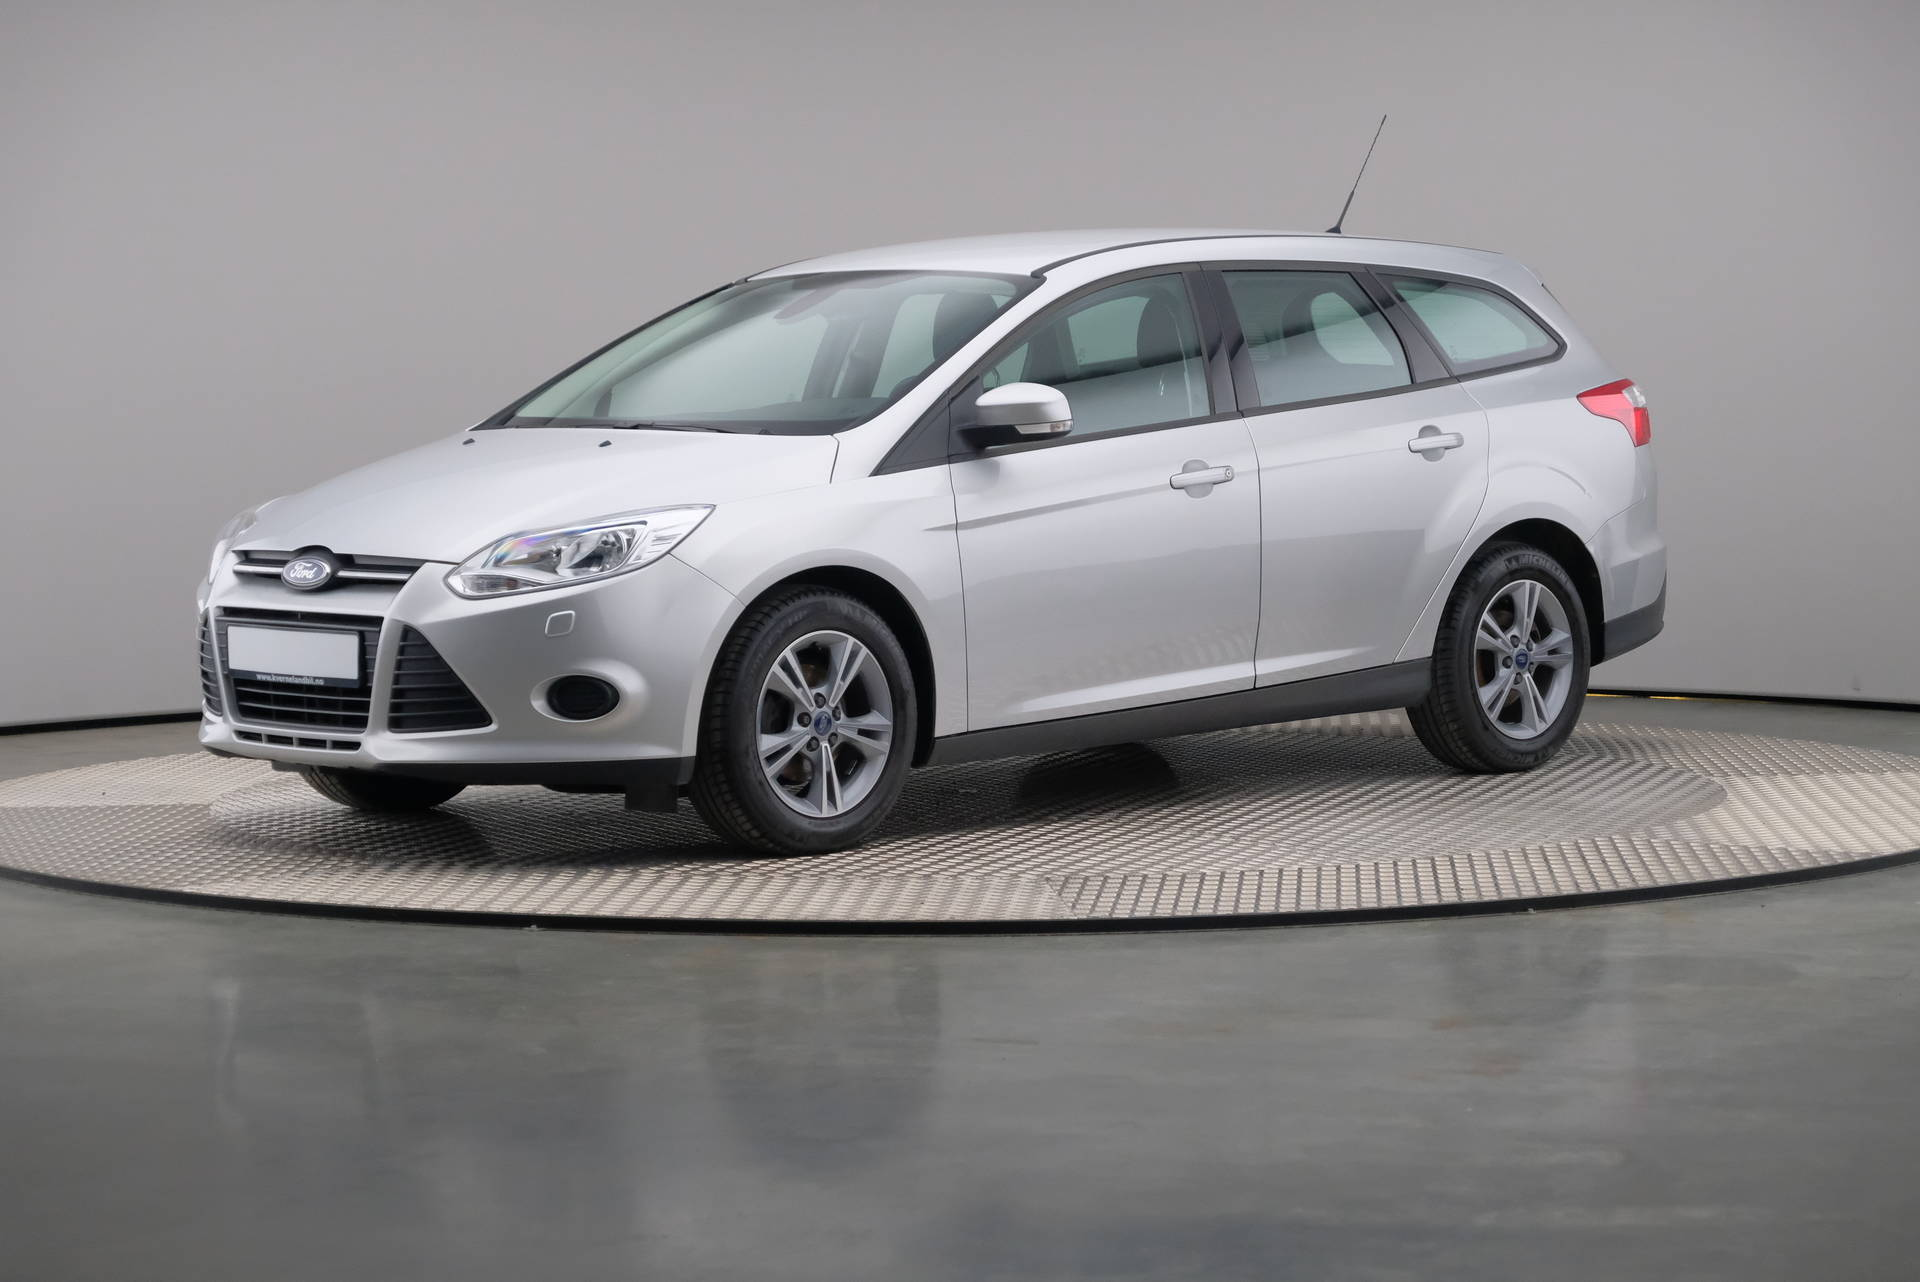 Ford Focus 1.1 100HK Trend PDC/BT, 360-image0